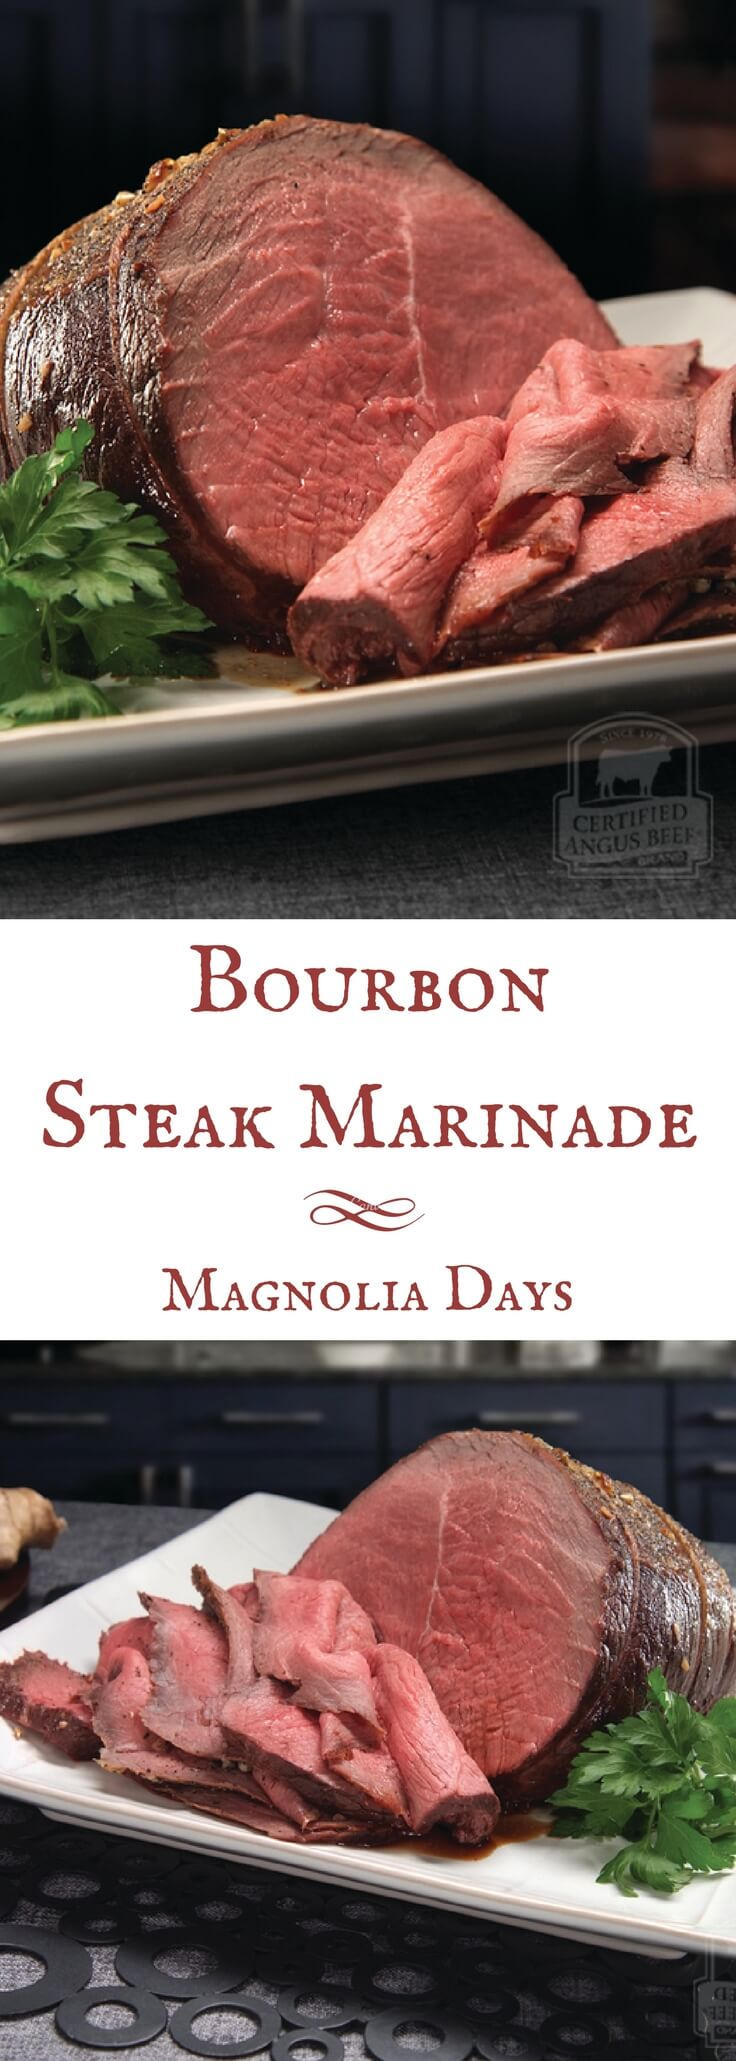 Marinate any cut of steak with this Bourbon Steak Marinade! This recipe comes from the beef experts at Certified Angus Beef, so you know it's a good one.